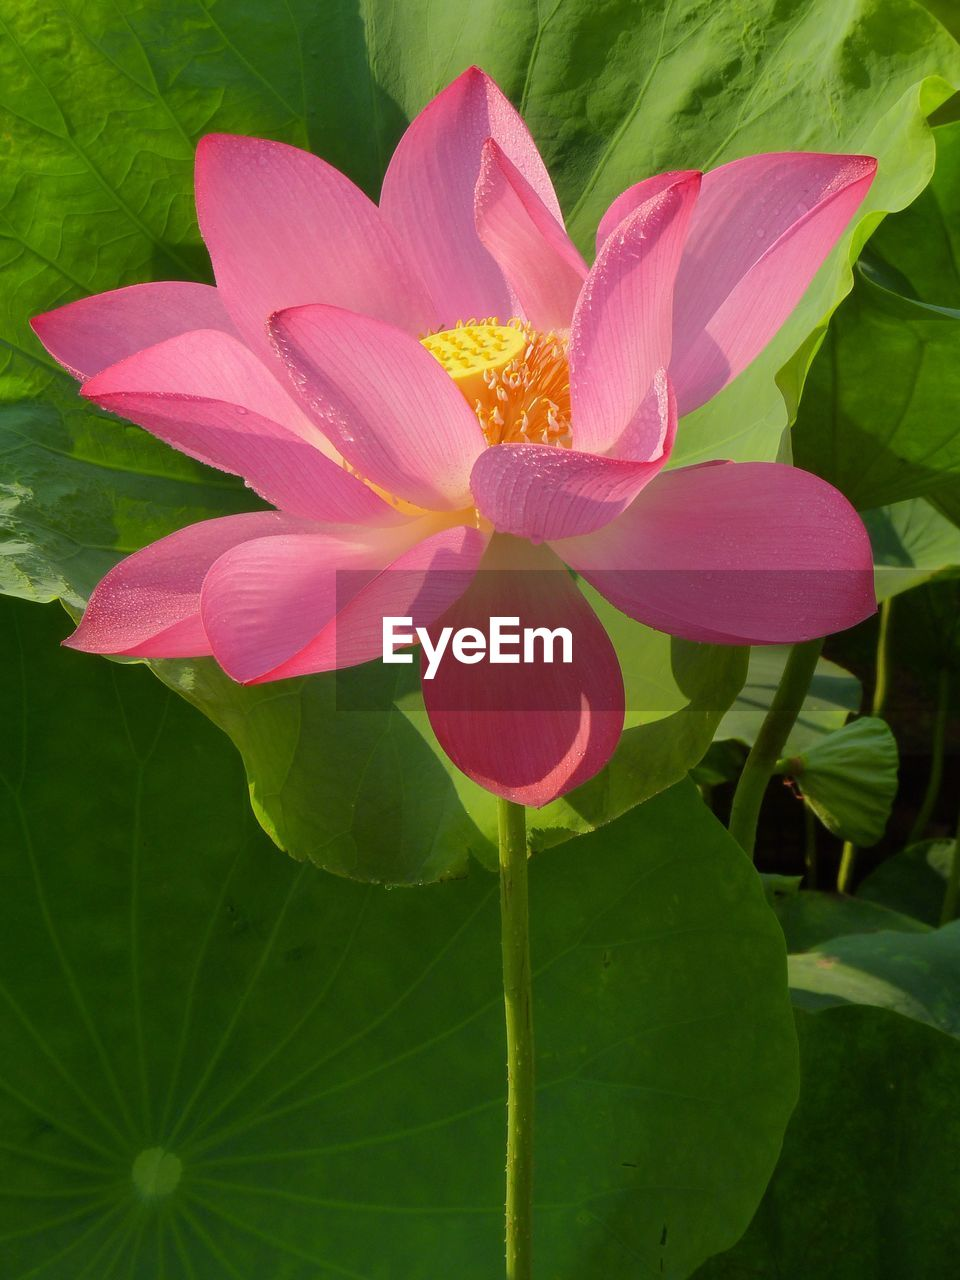 flower, petal, leaf, nature, growth, beauty in nature, plant, fragility, pink color, flower head, freshness, no people, green color, blooming, day, close-up, outdoors, lotus water lily